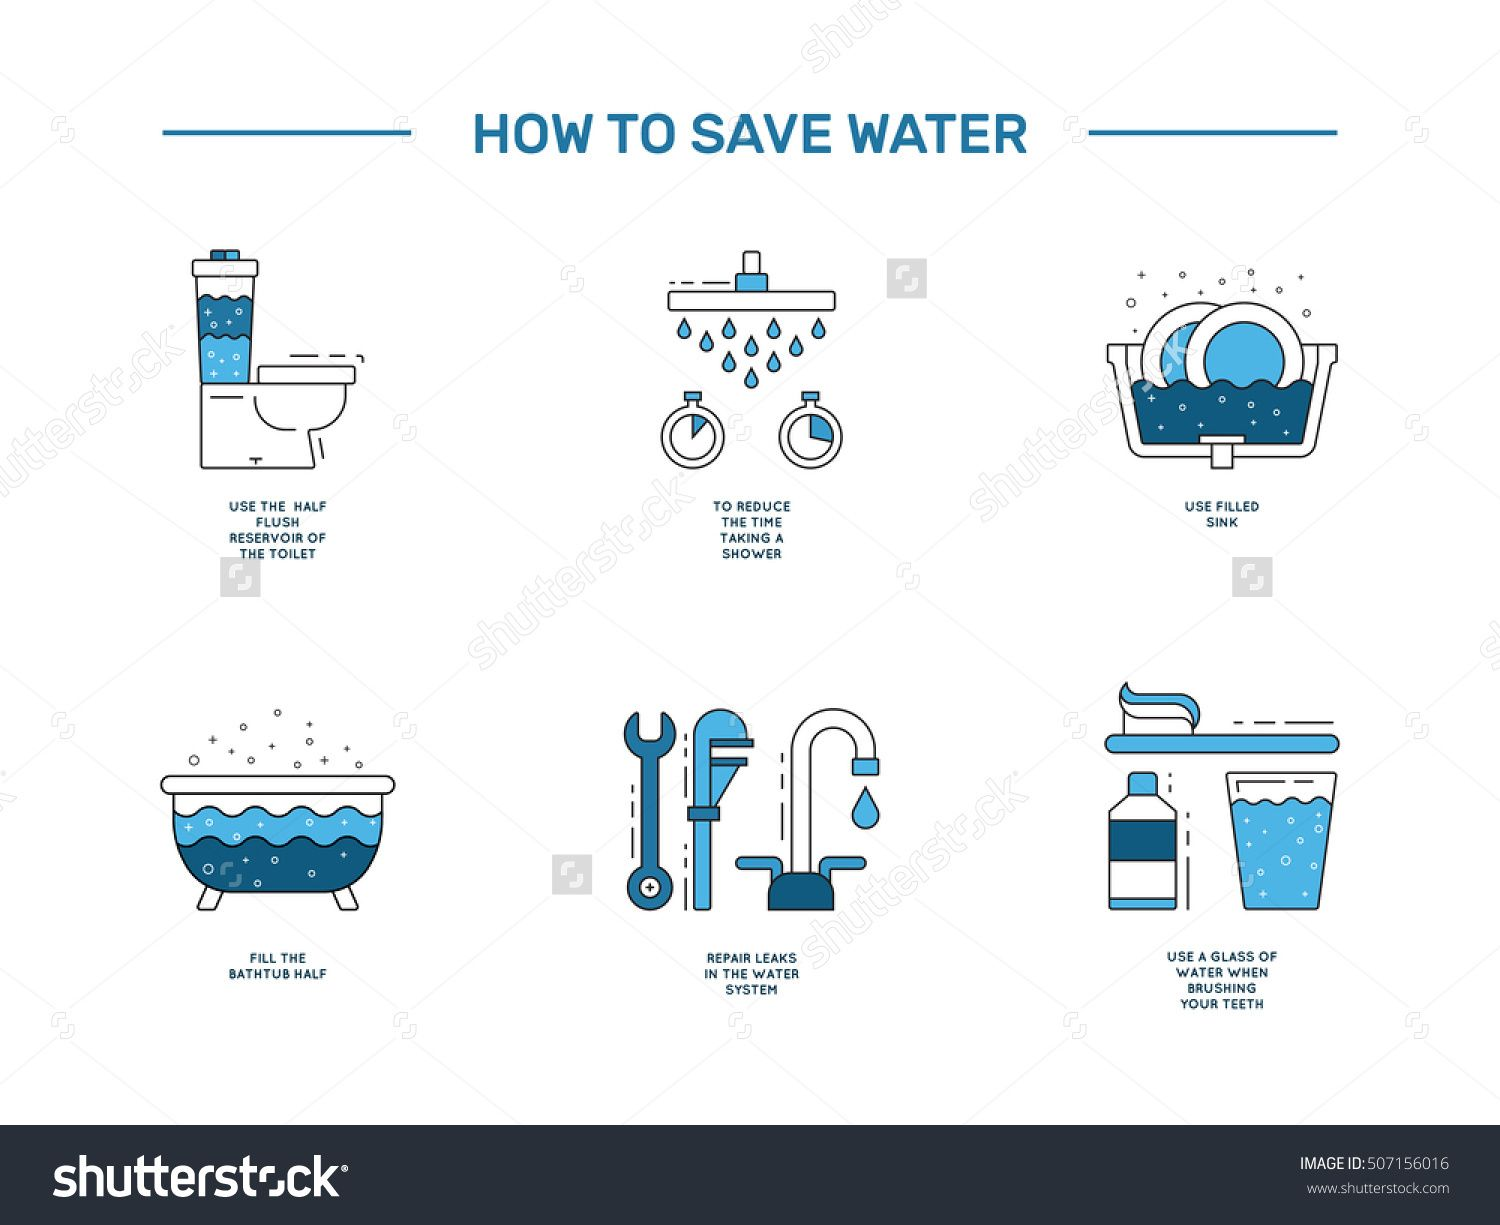 hight resolution of illustration with tips on saving water consumption by man in a house to reduce financial costs and reduce the amount of accounts with water consumption